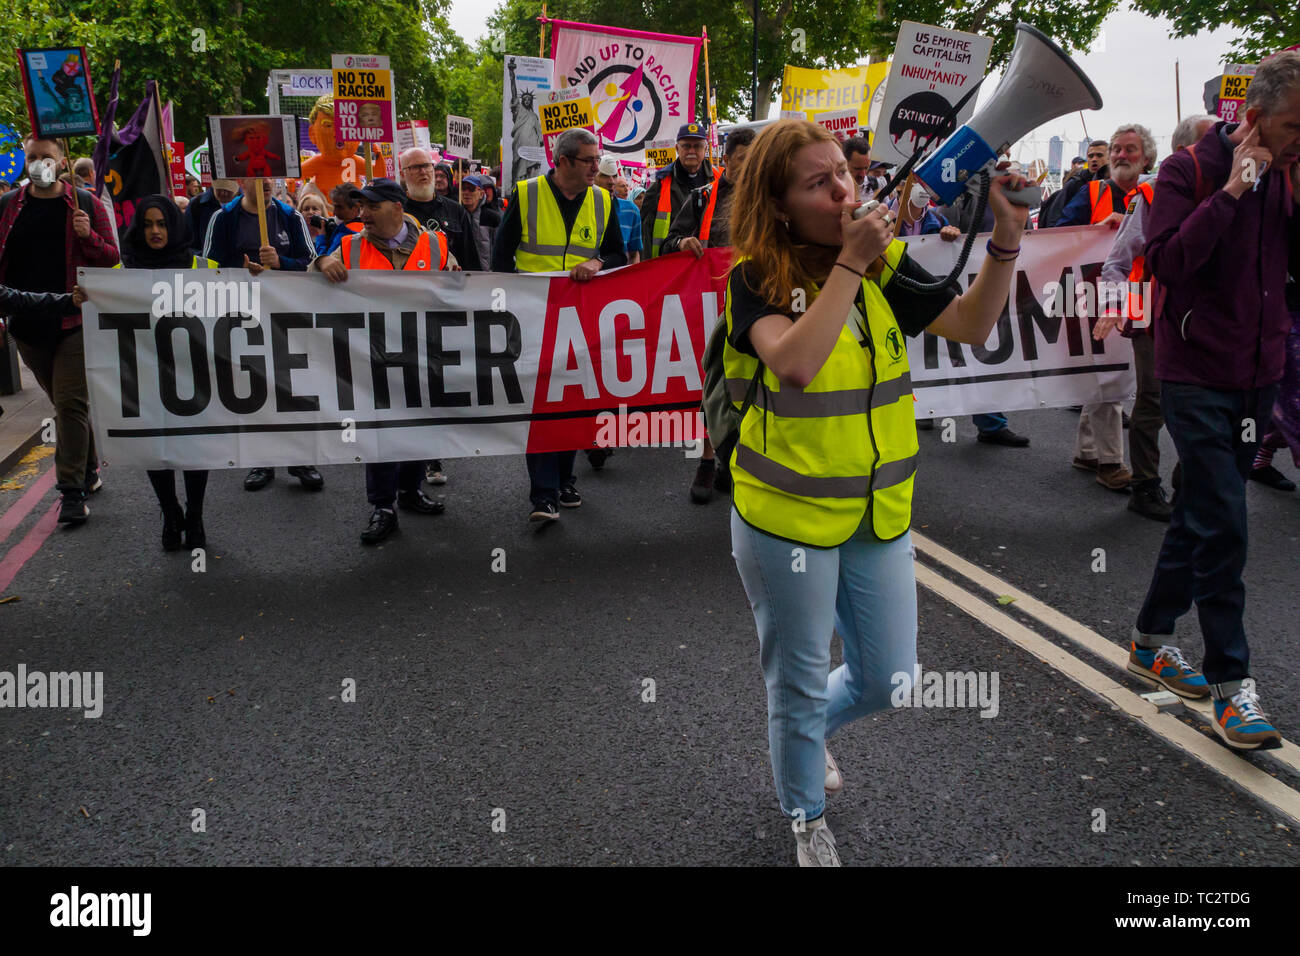 London, UK. People march from the rally in Whitehall to Parliament Square for a further rally to send a clear message that President Trump is not welcome here because of his climate denial, racism, Islamophobia, misogyny and bigotry. His policies of hate and division have energised the far right around the world. 4th June, 2019. Peter Marshall IMAGESLIVE Credit: Peter Marshall/IMAGESLIVE/ZUMA Wire/Alamy Live News Stock Photo